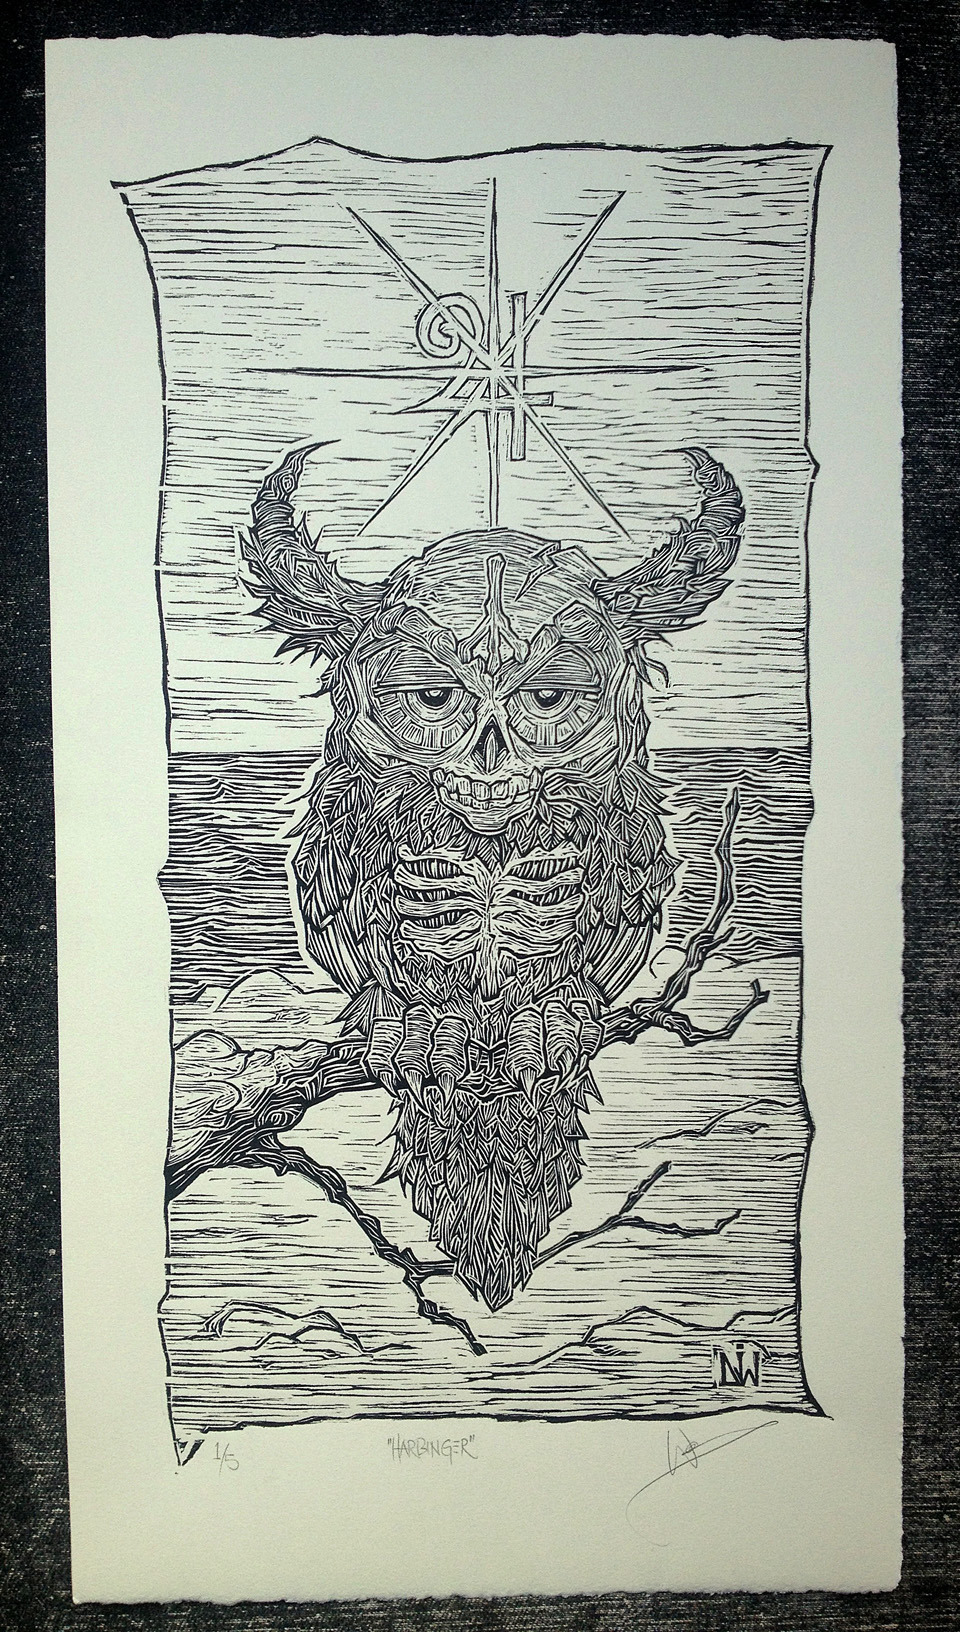 """Harbinger"" (2013), Woodcut Print by Darcy J. Watt Limited edition of 5."